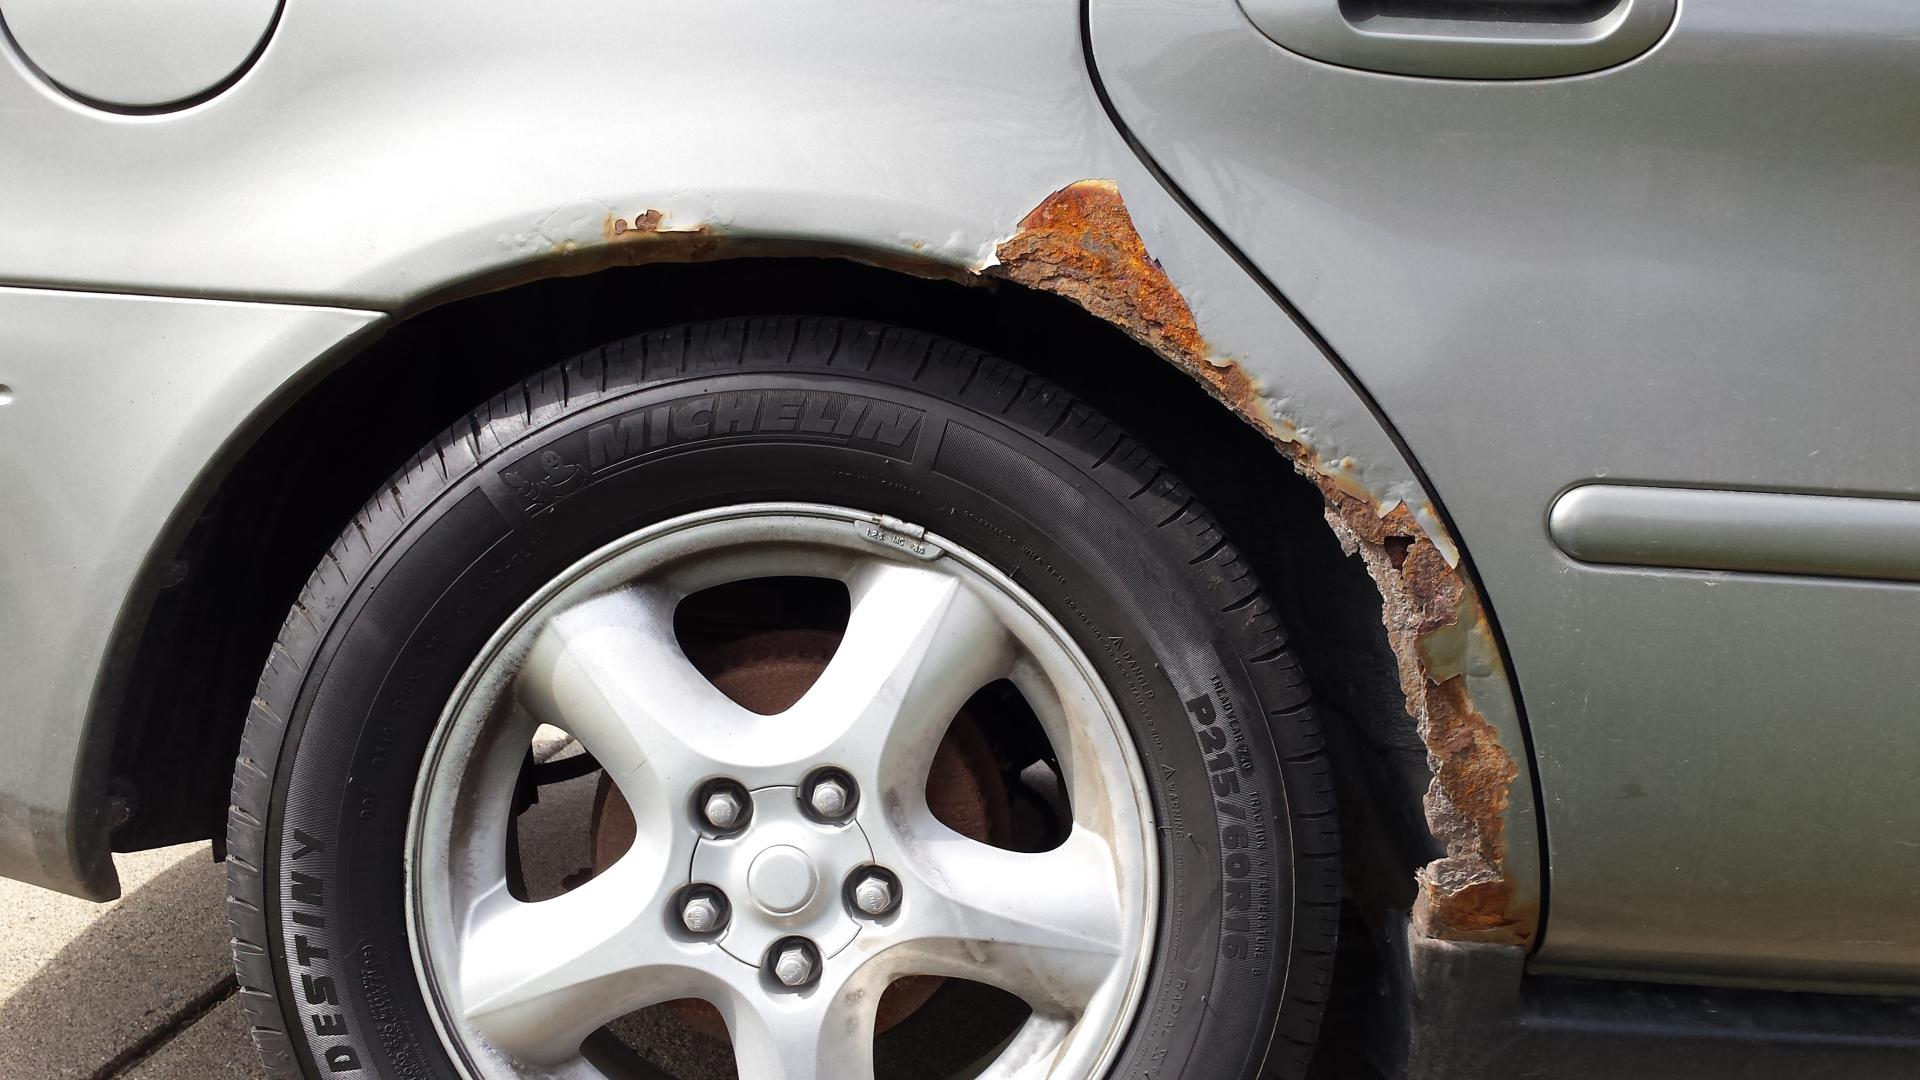 How To Repair Rust On Car Wheel Arches